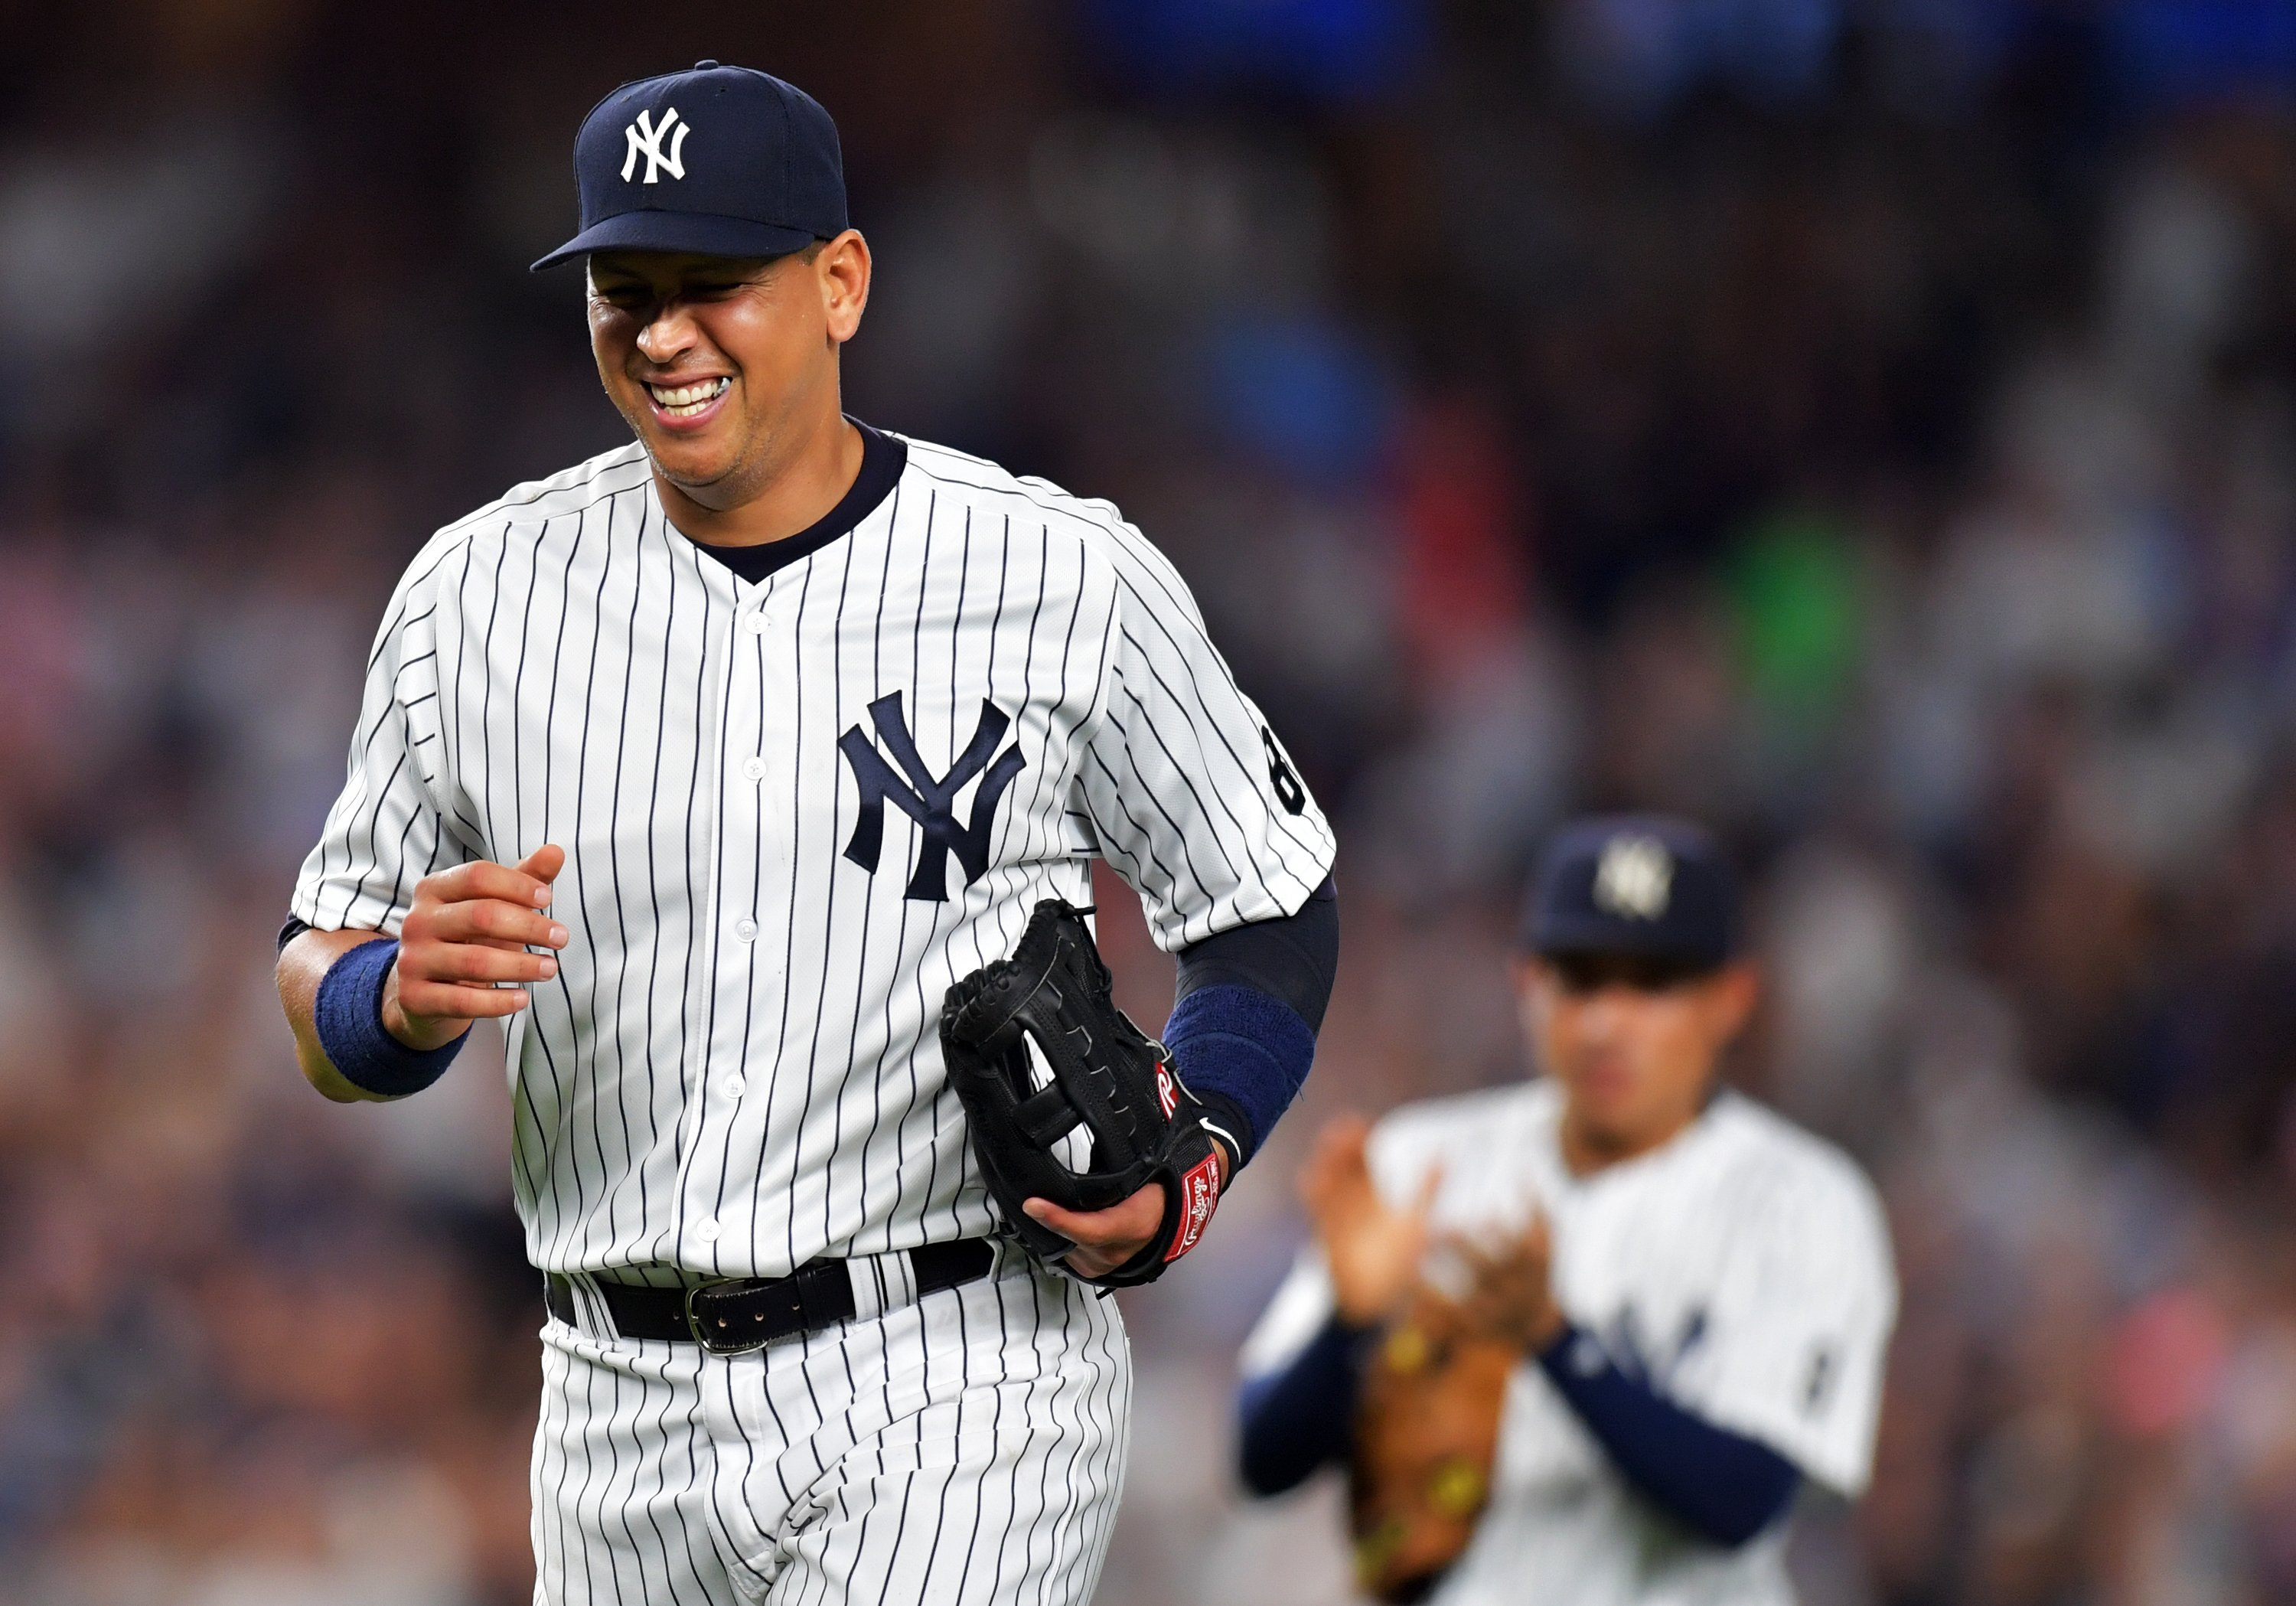 Alex Rodriguez #13 of the New York Yankees leaves the game in the ninth inning against the Tampa Bay Rays at Yankee Stadium on August 12, 2016 in New York City. (Photo by Drew Hallowell/Getty Images)